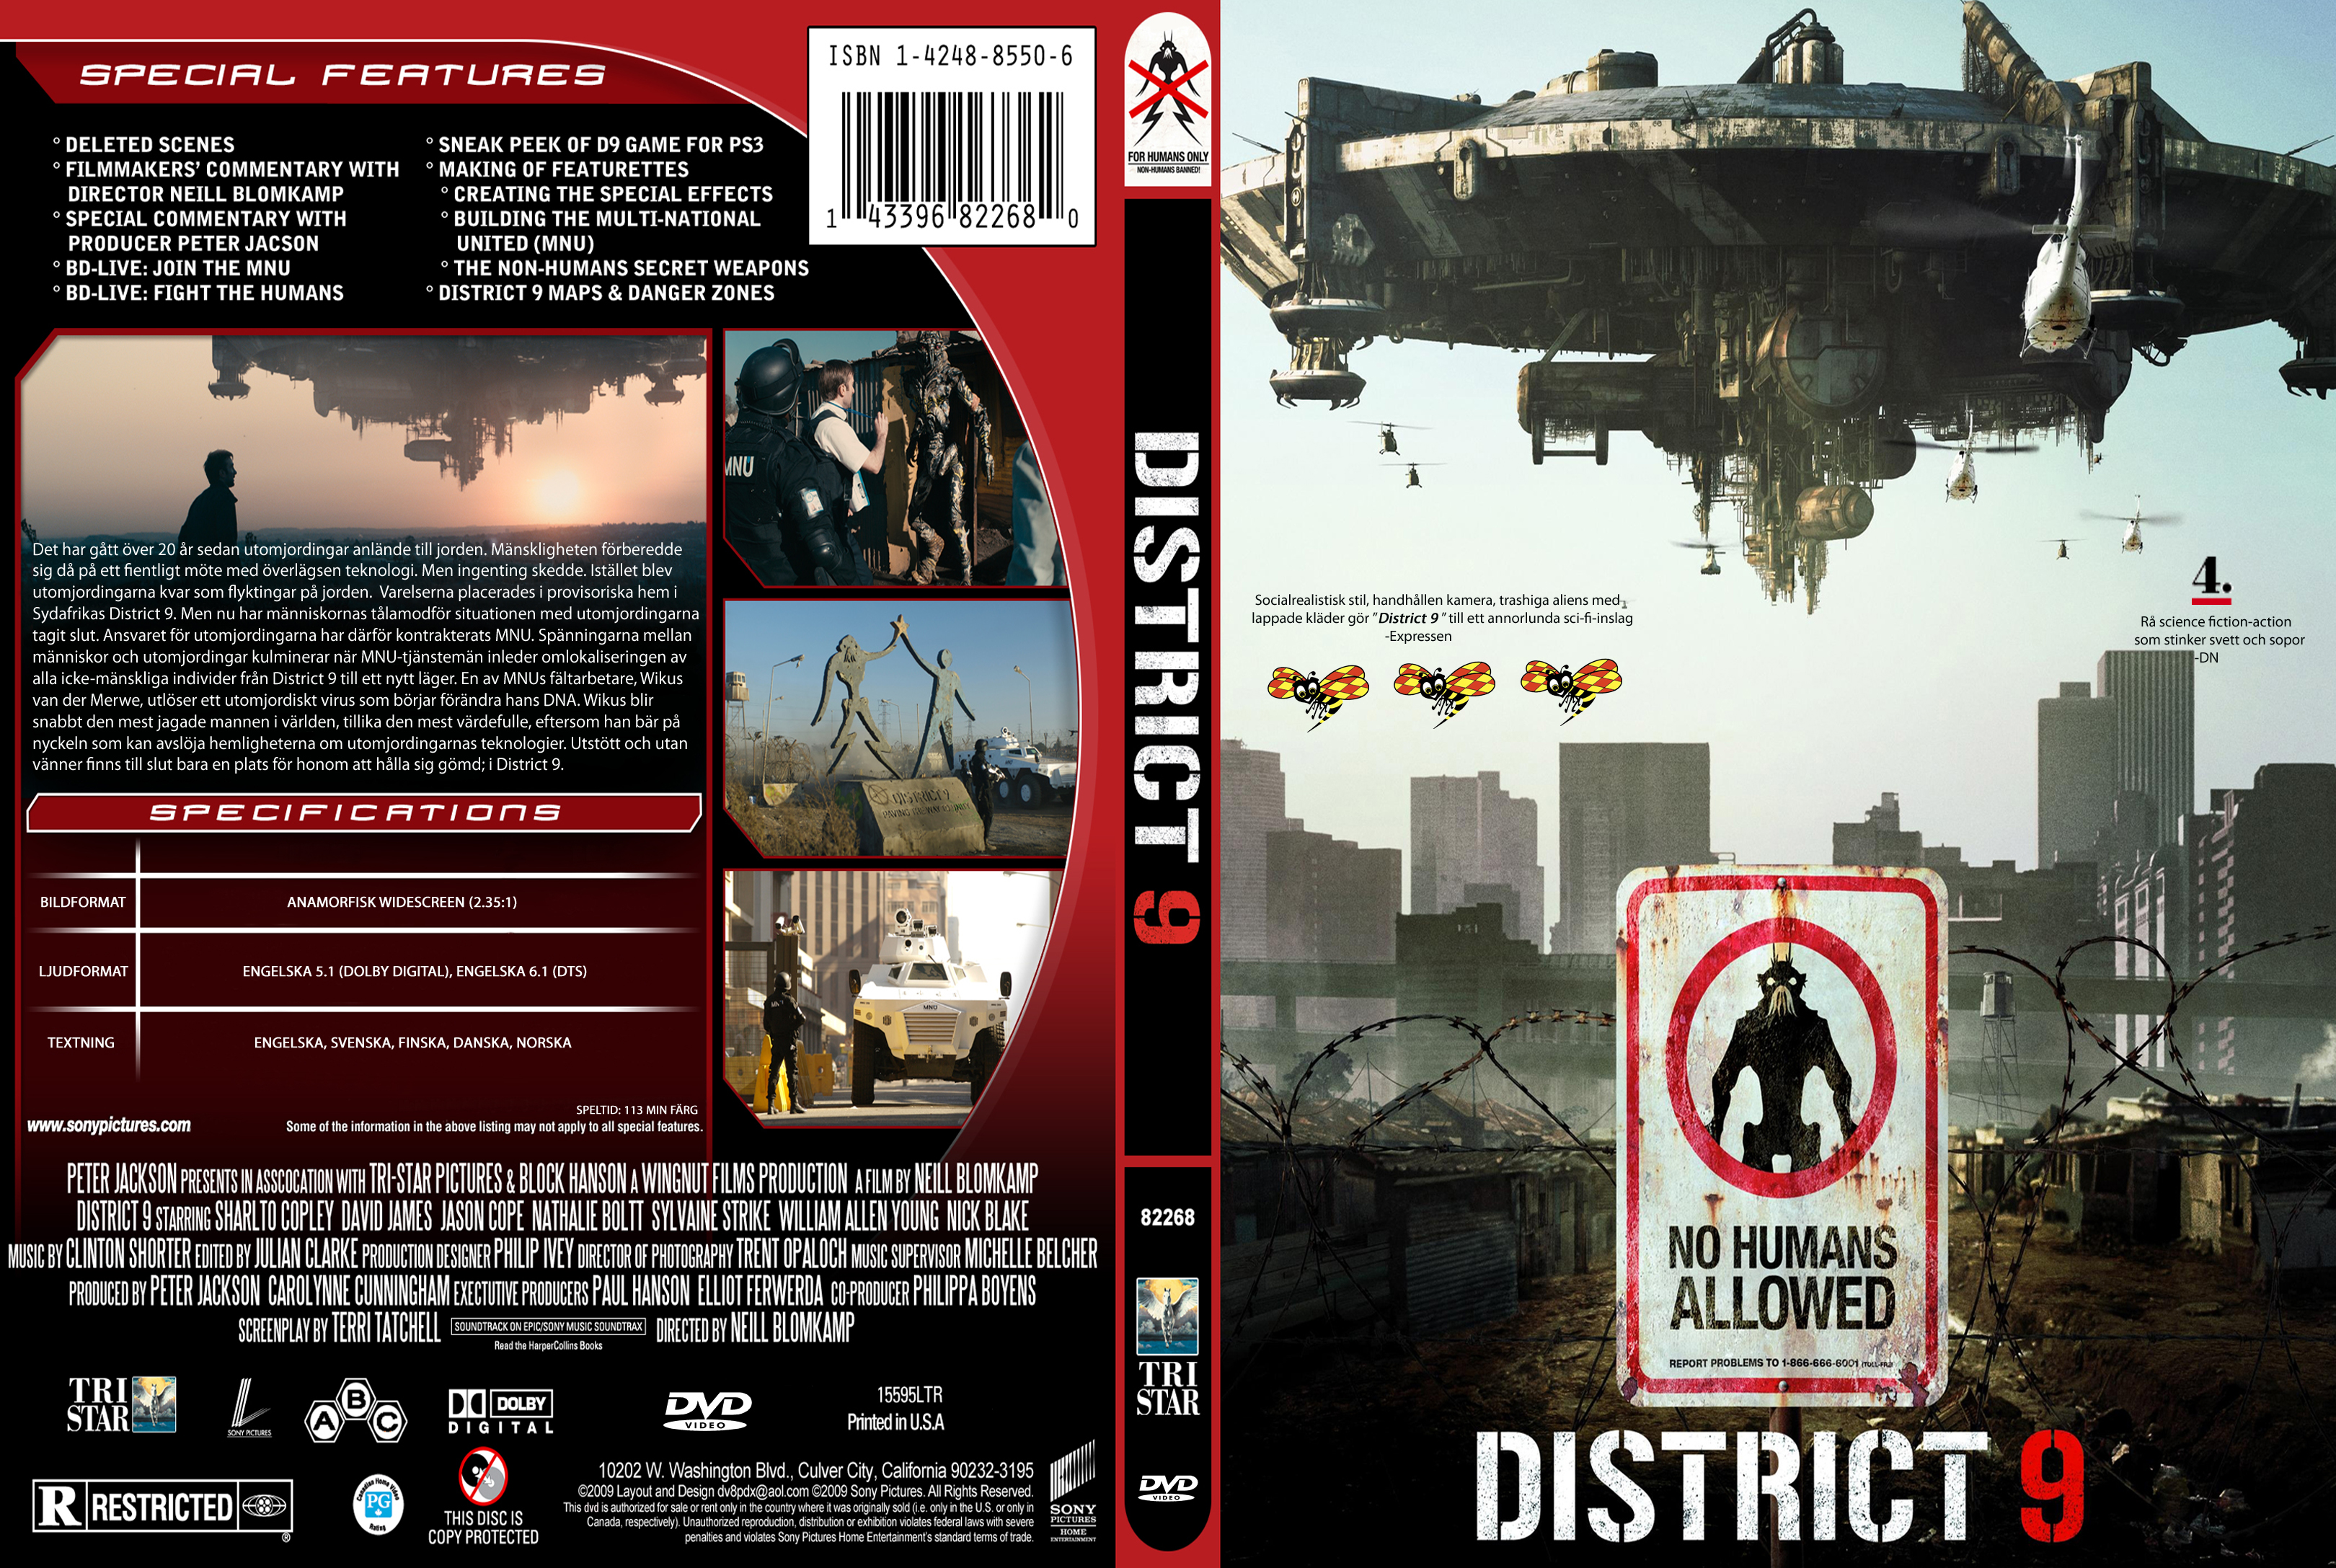 Covers Box Sk District 9 2009 High Quality Dvd Blueray Movie